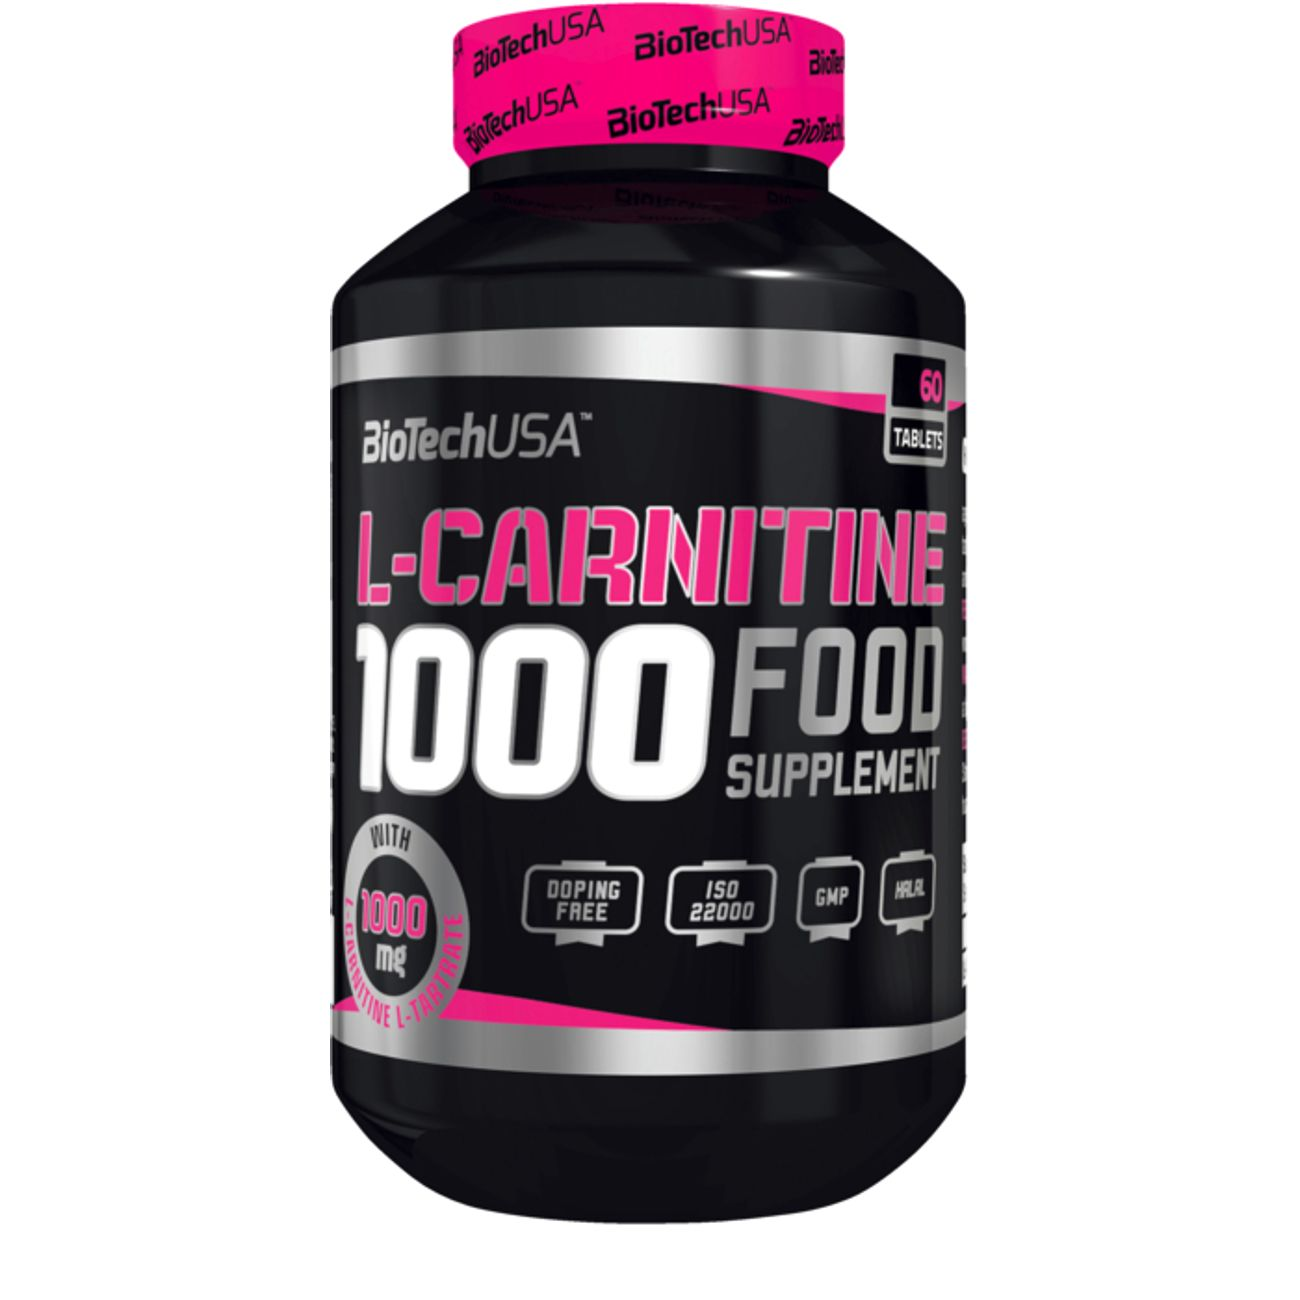 BIO TECH USA L-CARNITINE 1000 60 COMP